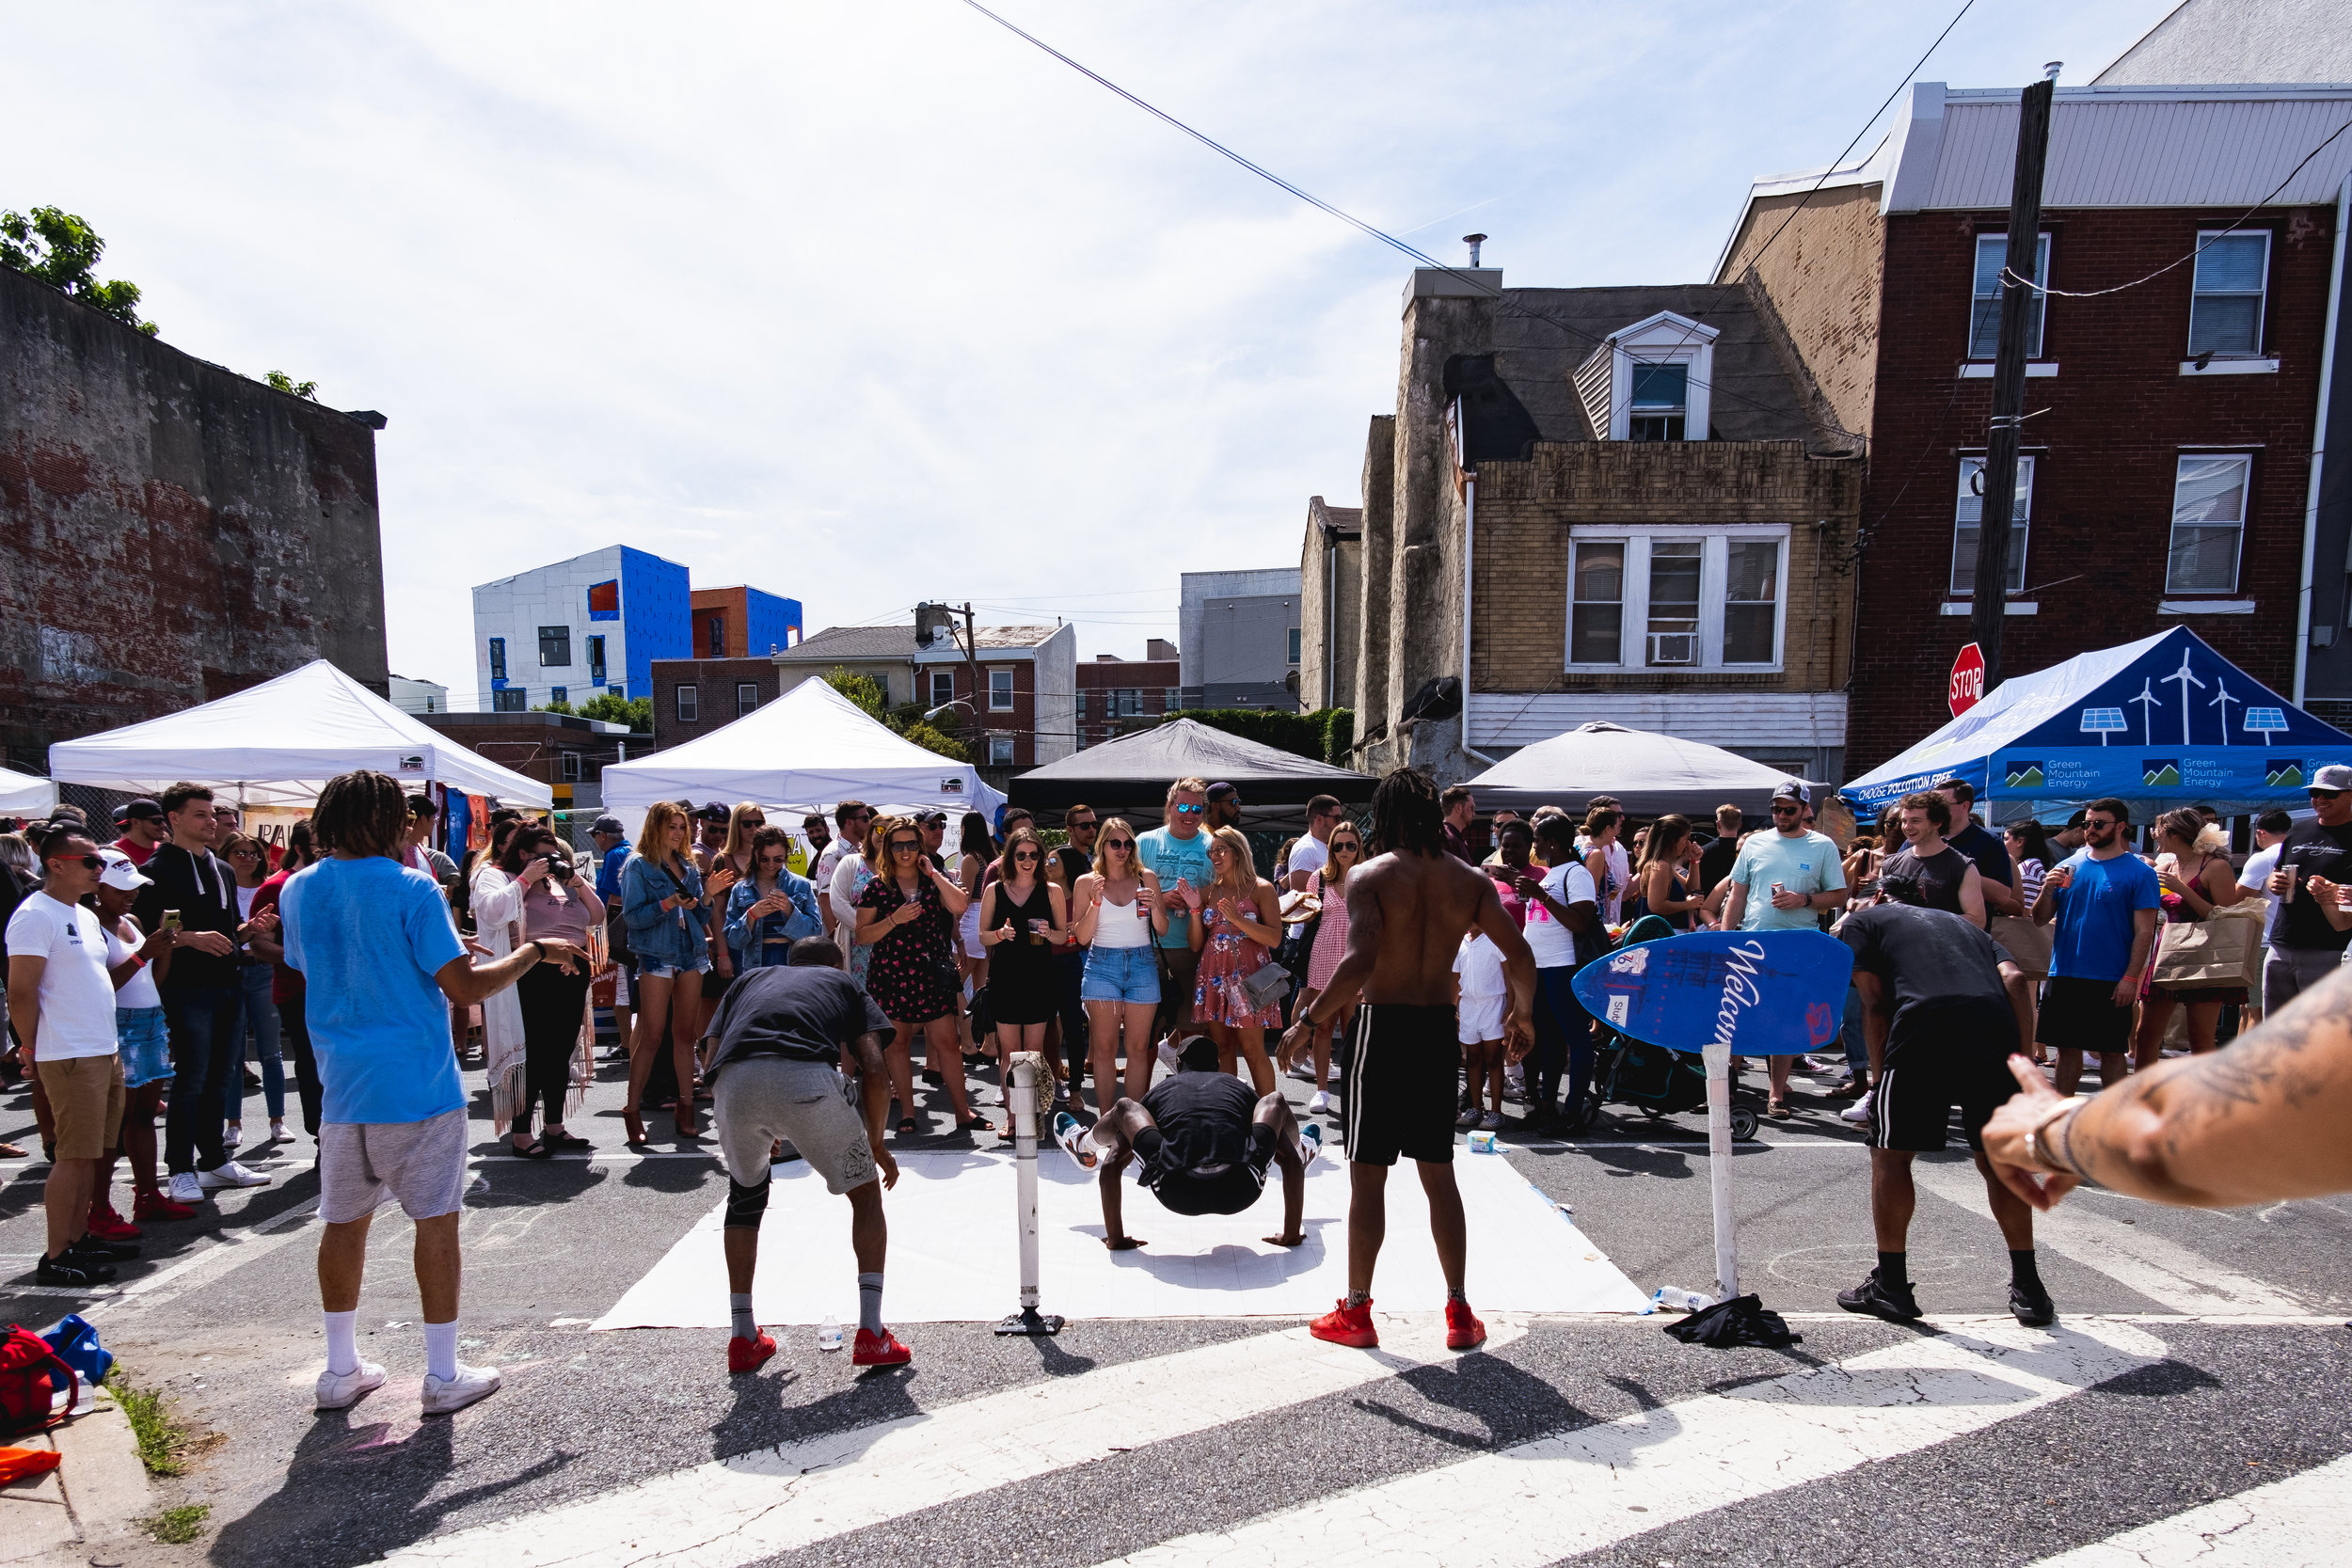 2019_PHILLY BEER WEEK_FISHTOWN FESTIVALE_EVENTS_THE PHILLY CHECKLIST-14.jpg